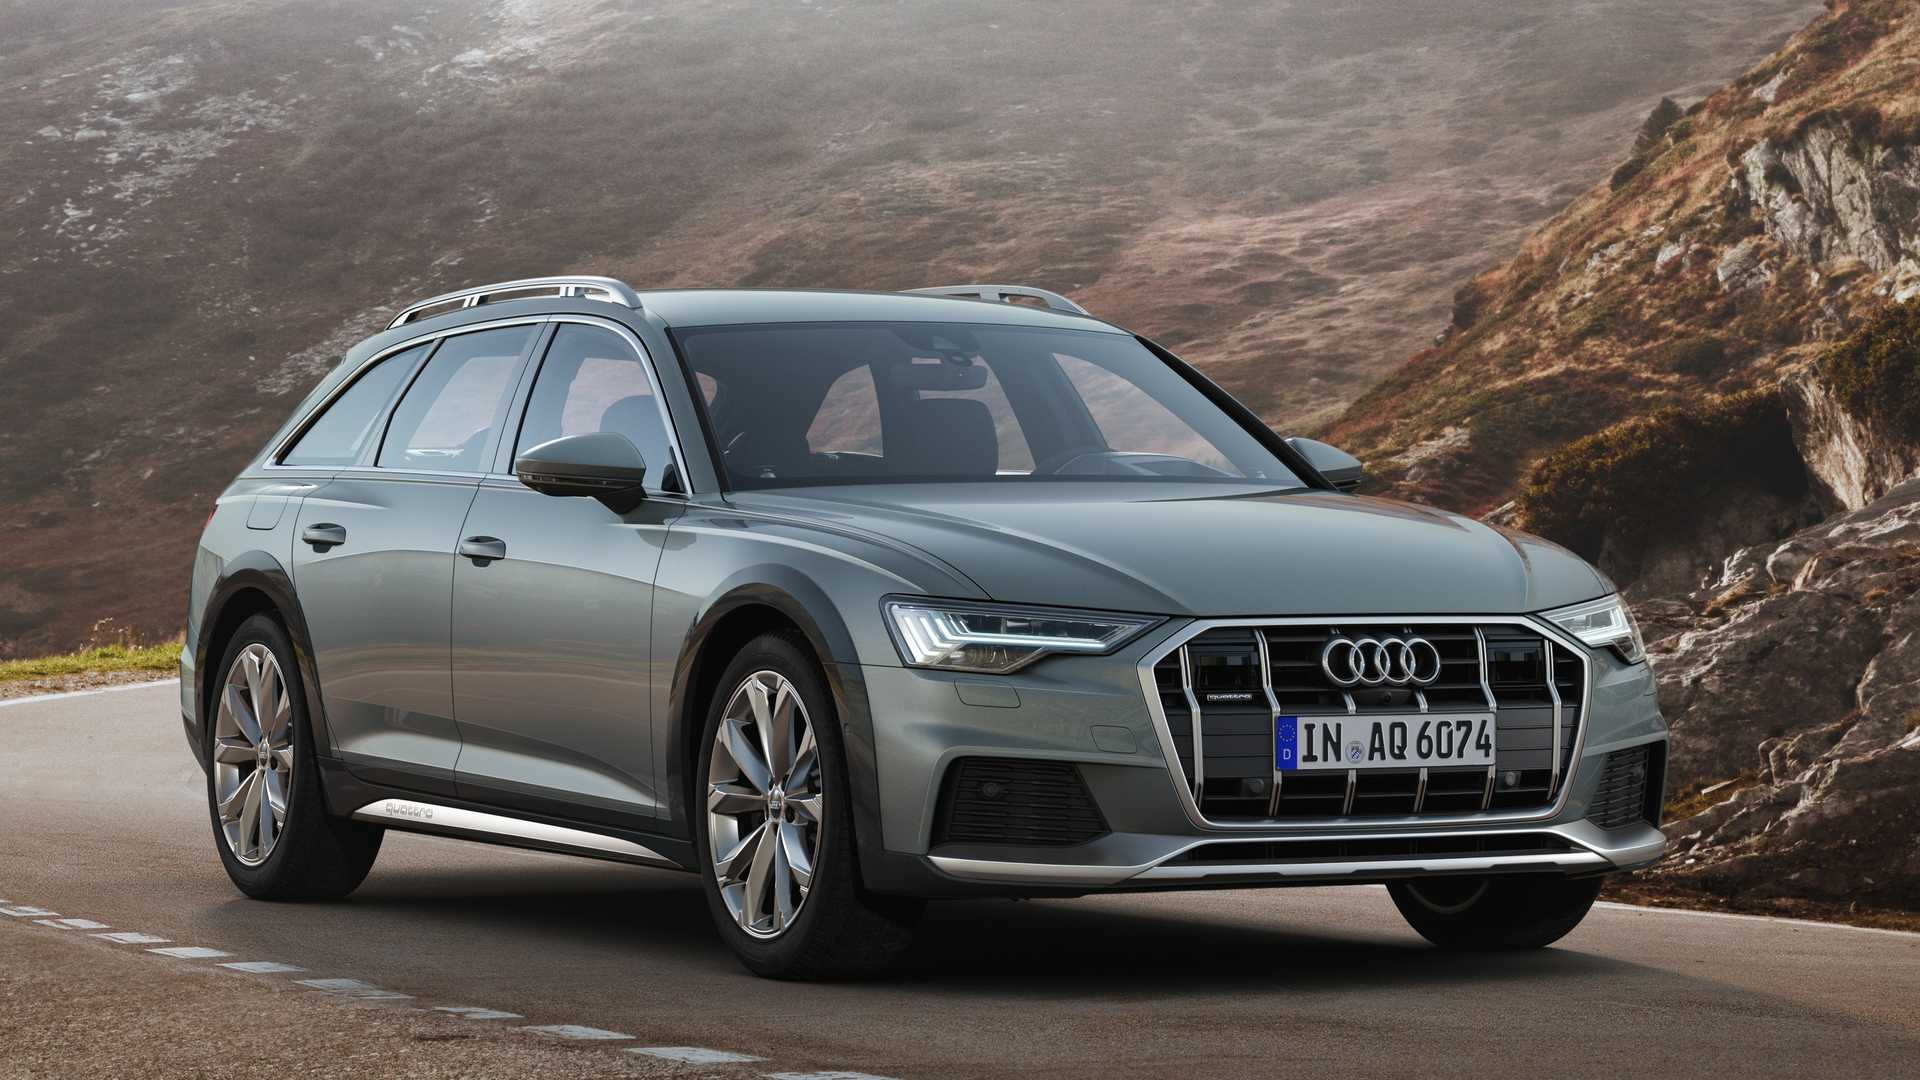 94 The 2020 Audi A6 Allroad Usa Speed Test